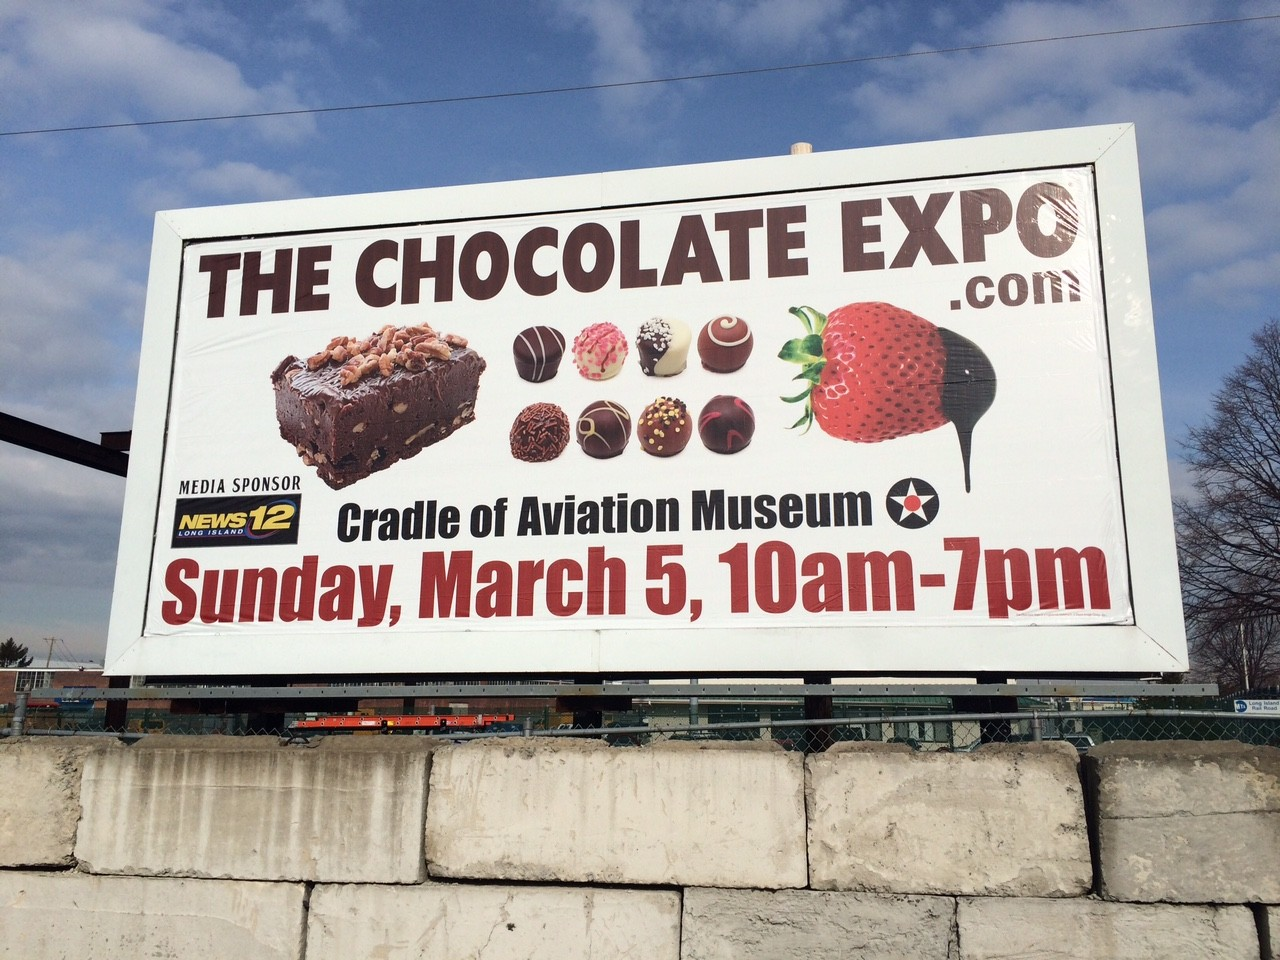 The Chocolate Expo 30 Sheet Poster Advertising